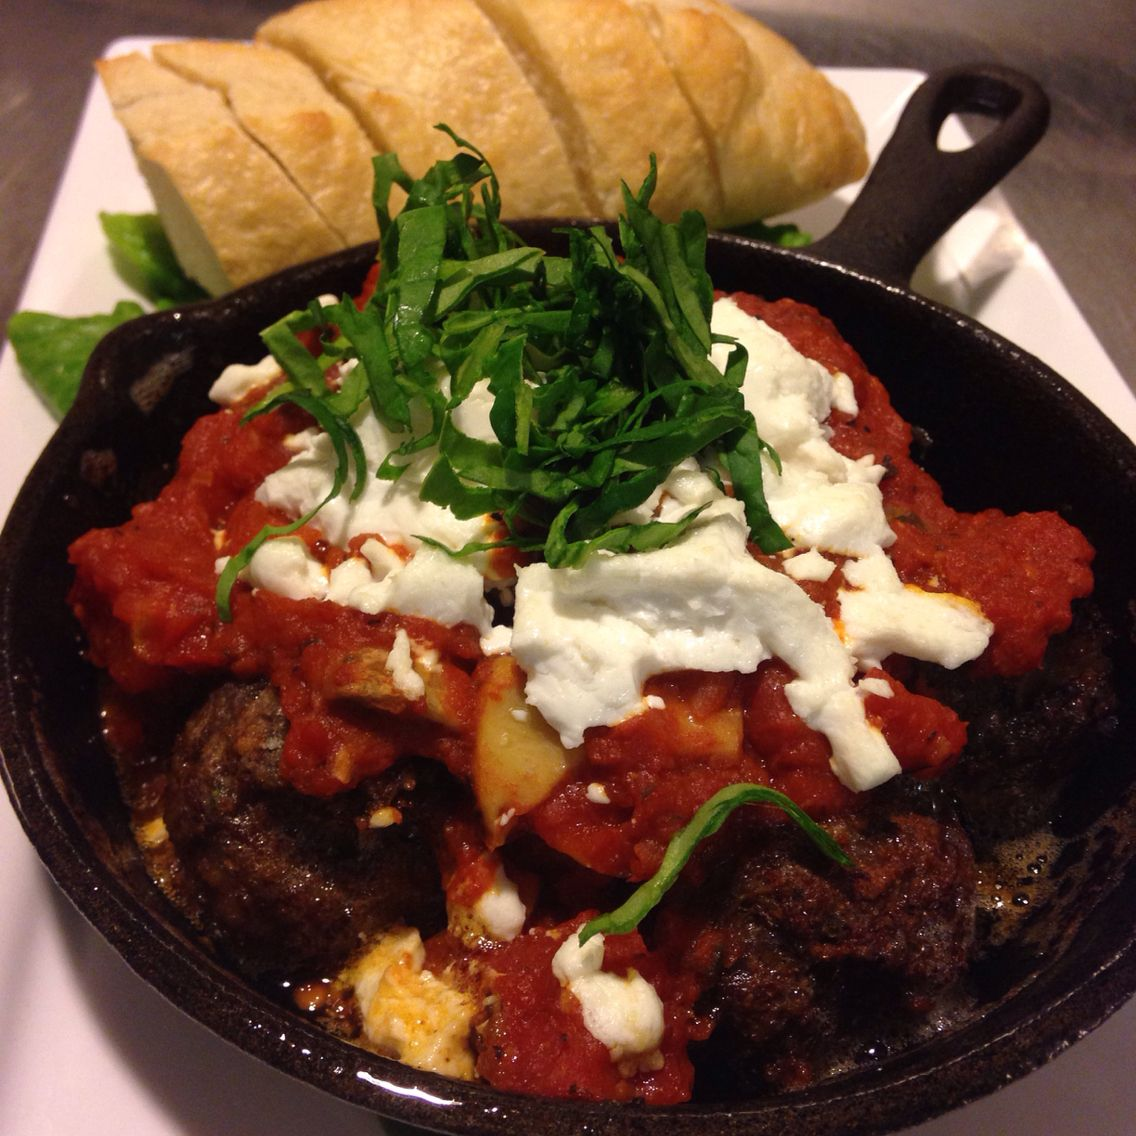 Meatballs w goats cheese and baguette plus marinara